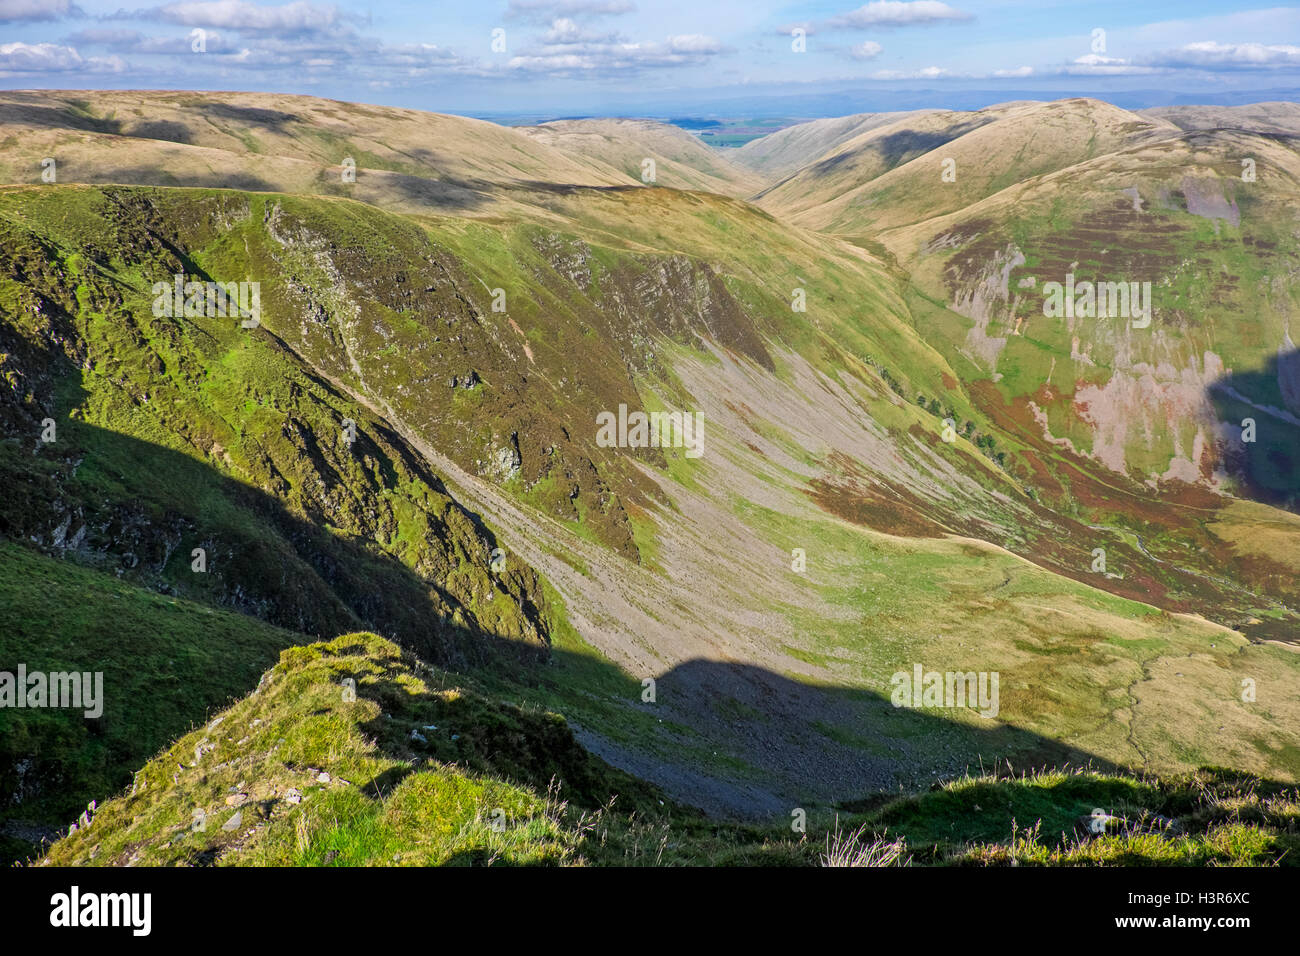 Looking towards Cautley Spout from Great Dummocks in the Howgills - Stock Image